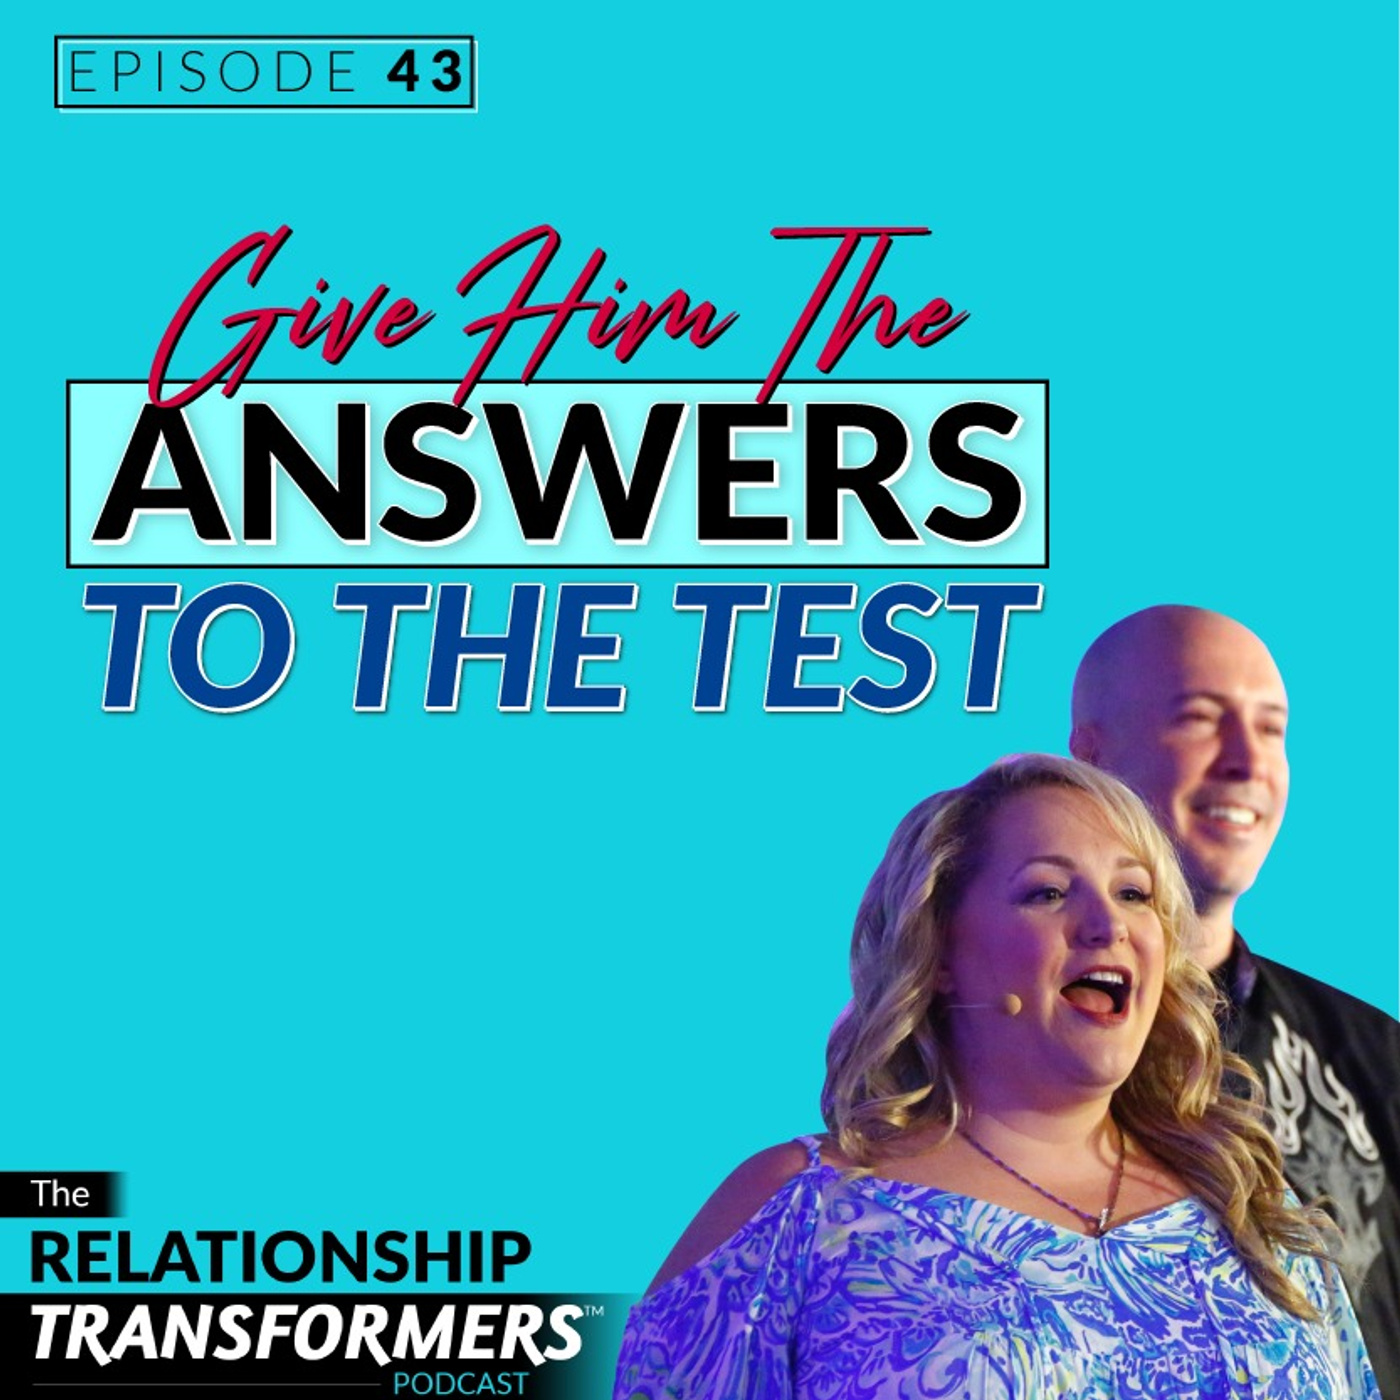 Relationship Transformers - 43: Give Him The Answers To The Test